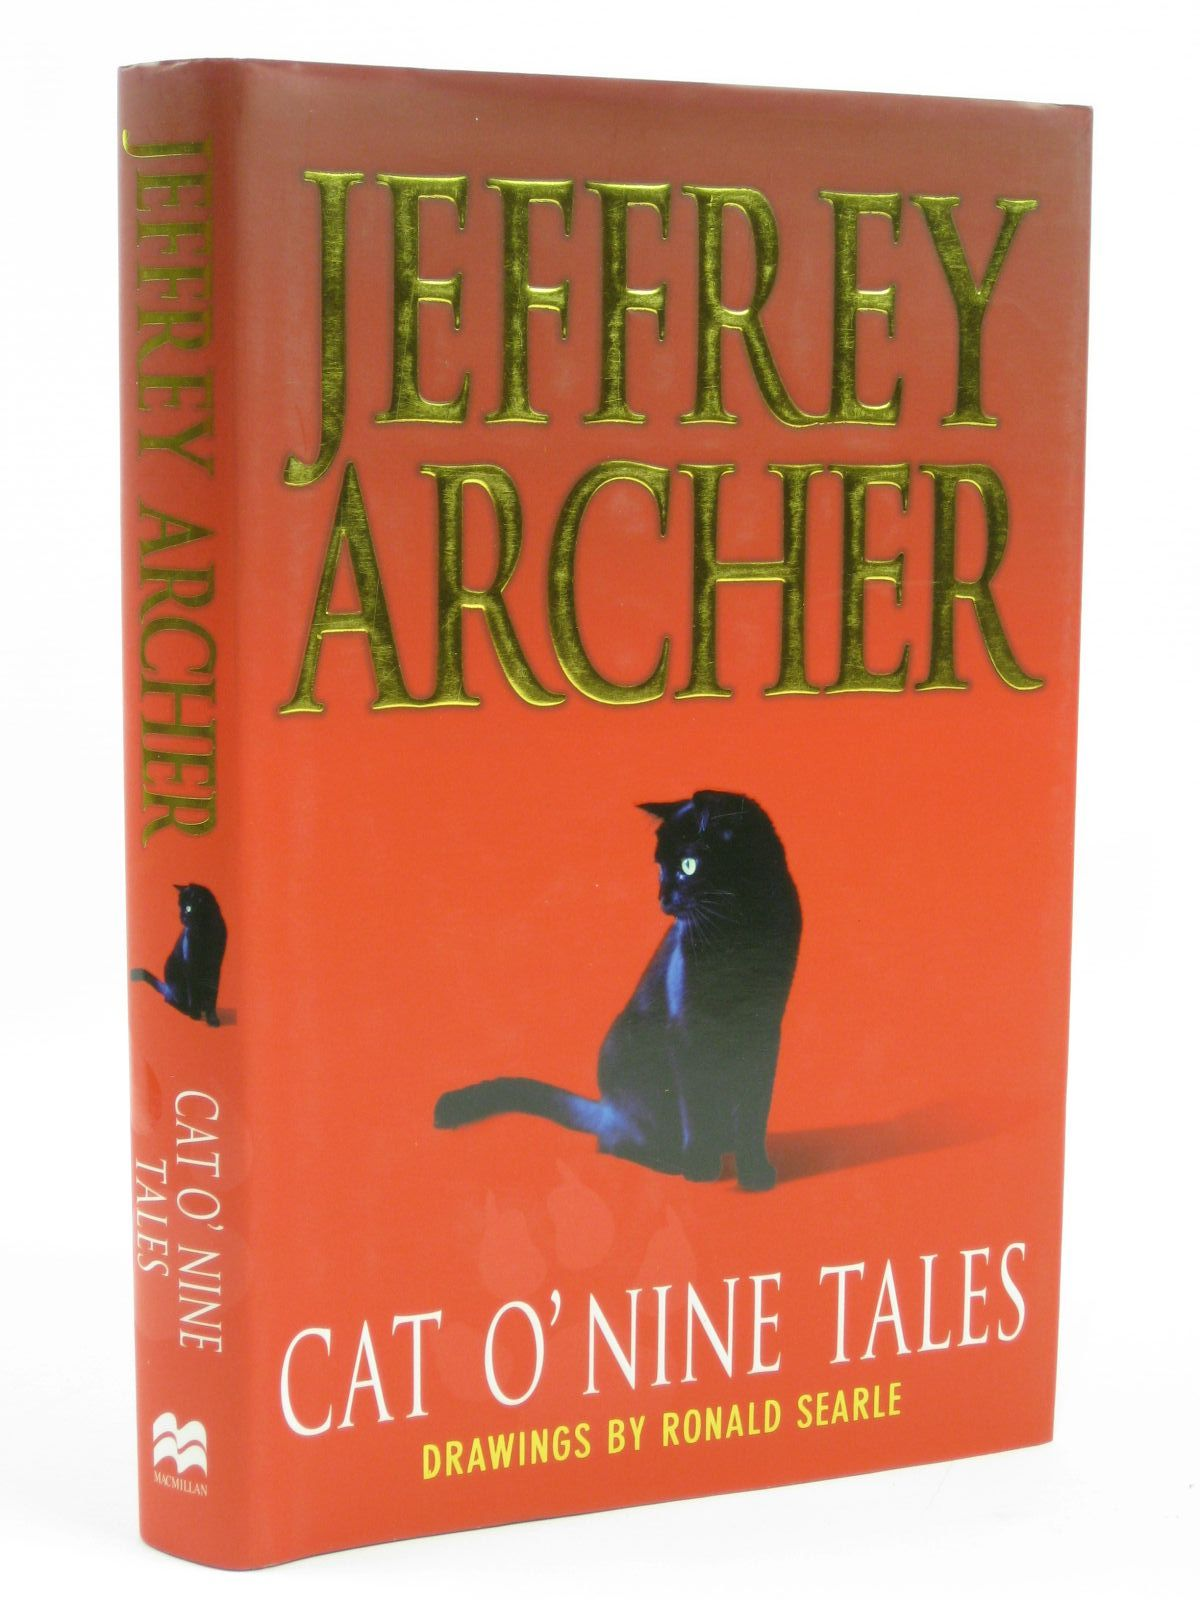 Photo of CAT O' NINE TALES written by Archer, Jeffrey illustrated by Searle, Ronald published by MacMillan (STOCK CODE: 1506689)  for sale by Stella & Rose's Books